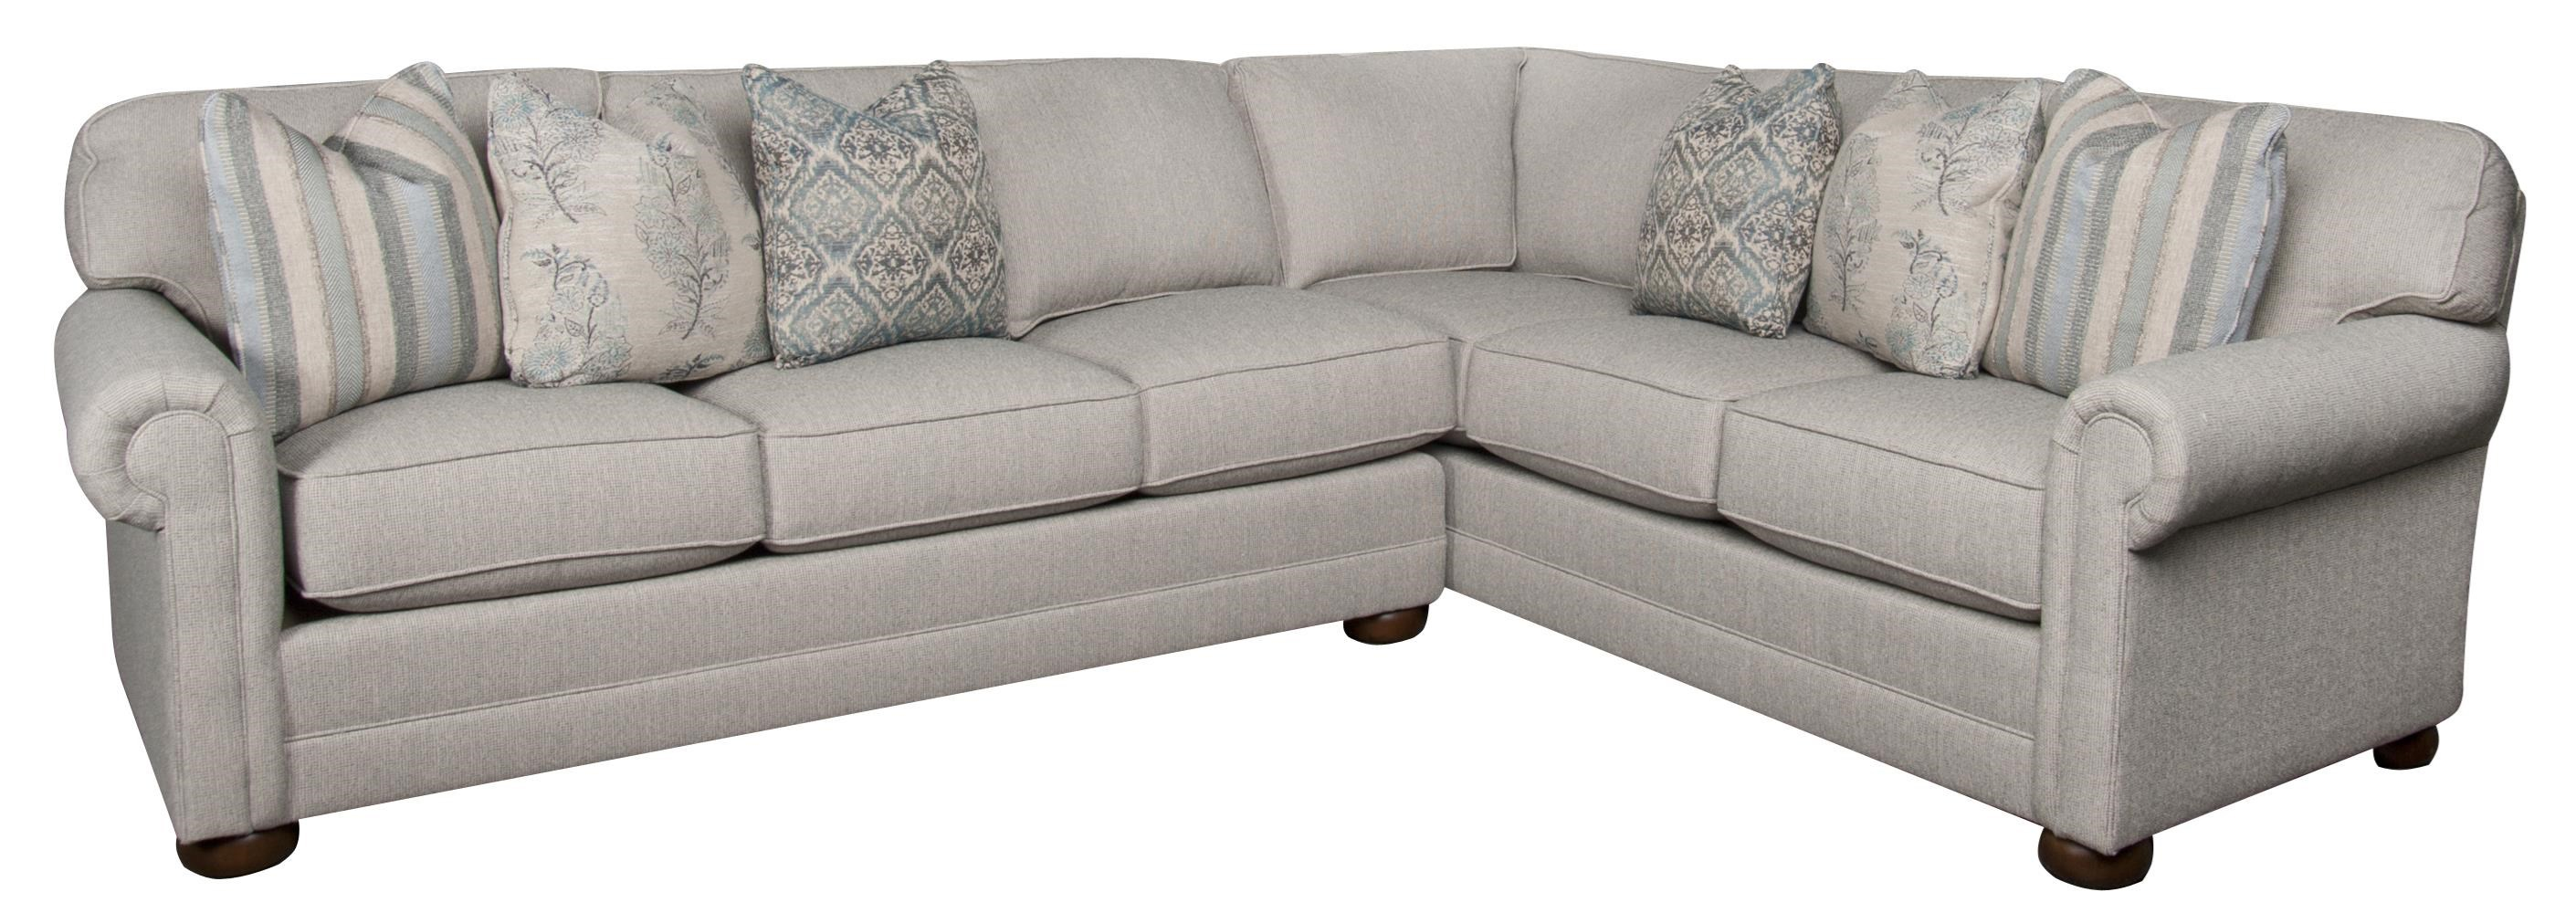 Morris Home Furnishings Jacqueline Jacqueline 2-Piece Sectional - Item Number: 134234235